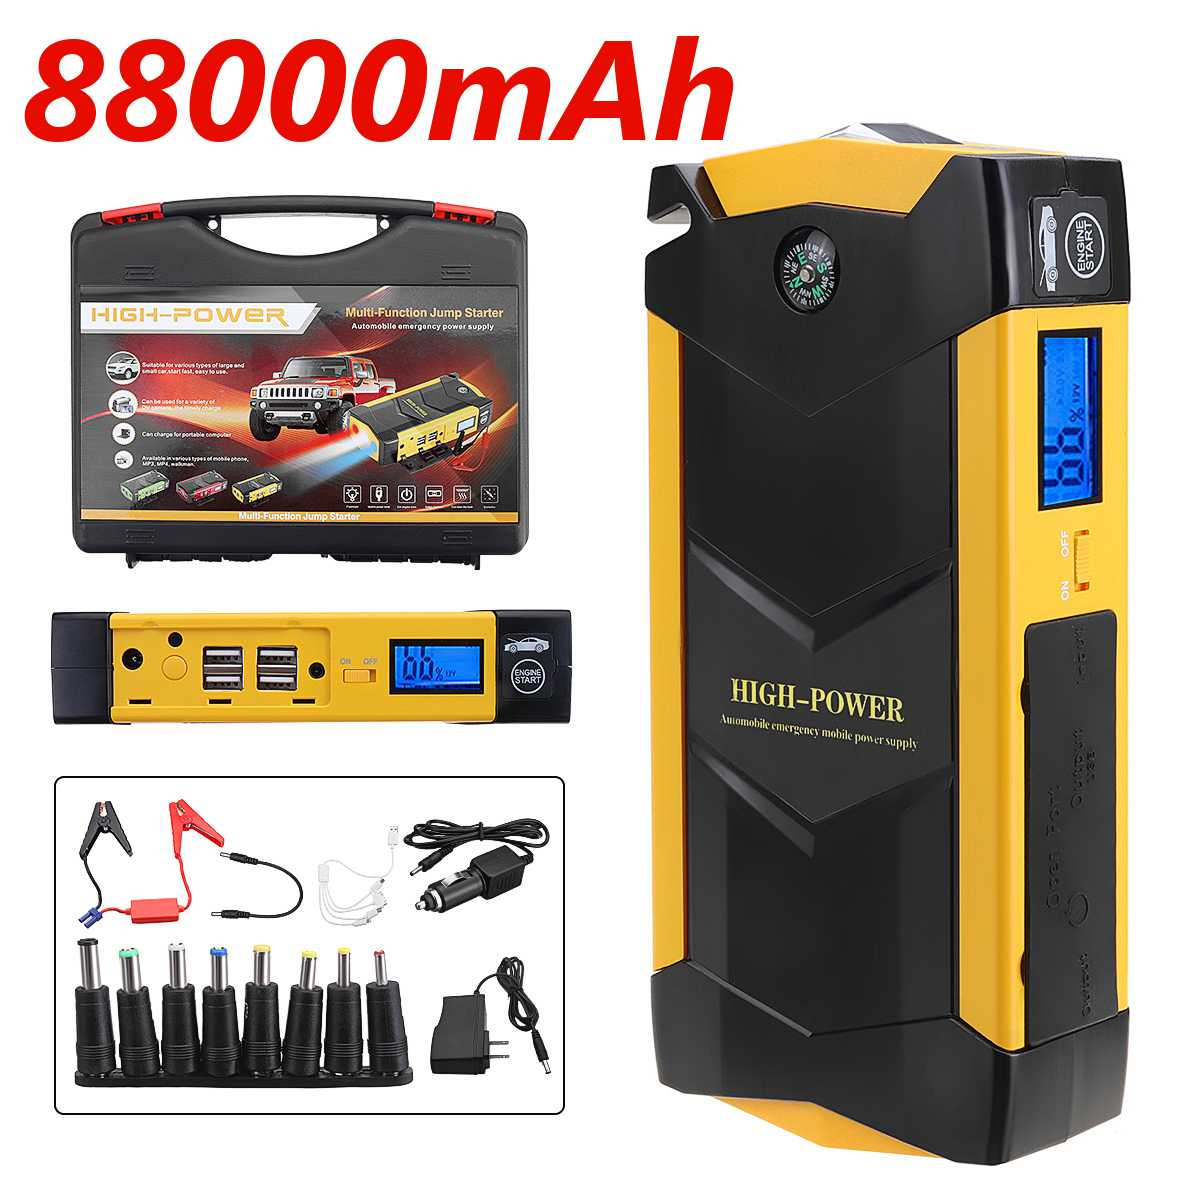 82800mAh 12V 4USB High Power Car Battery Charger Starting Car Jump Starter Booster Power Bank Kit For Car Auto Starting Device(China)